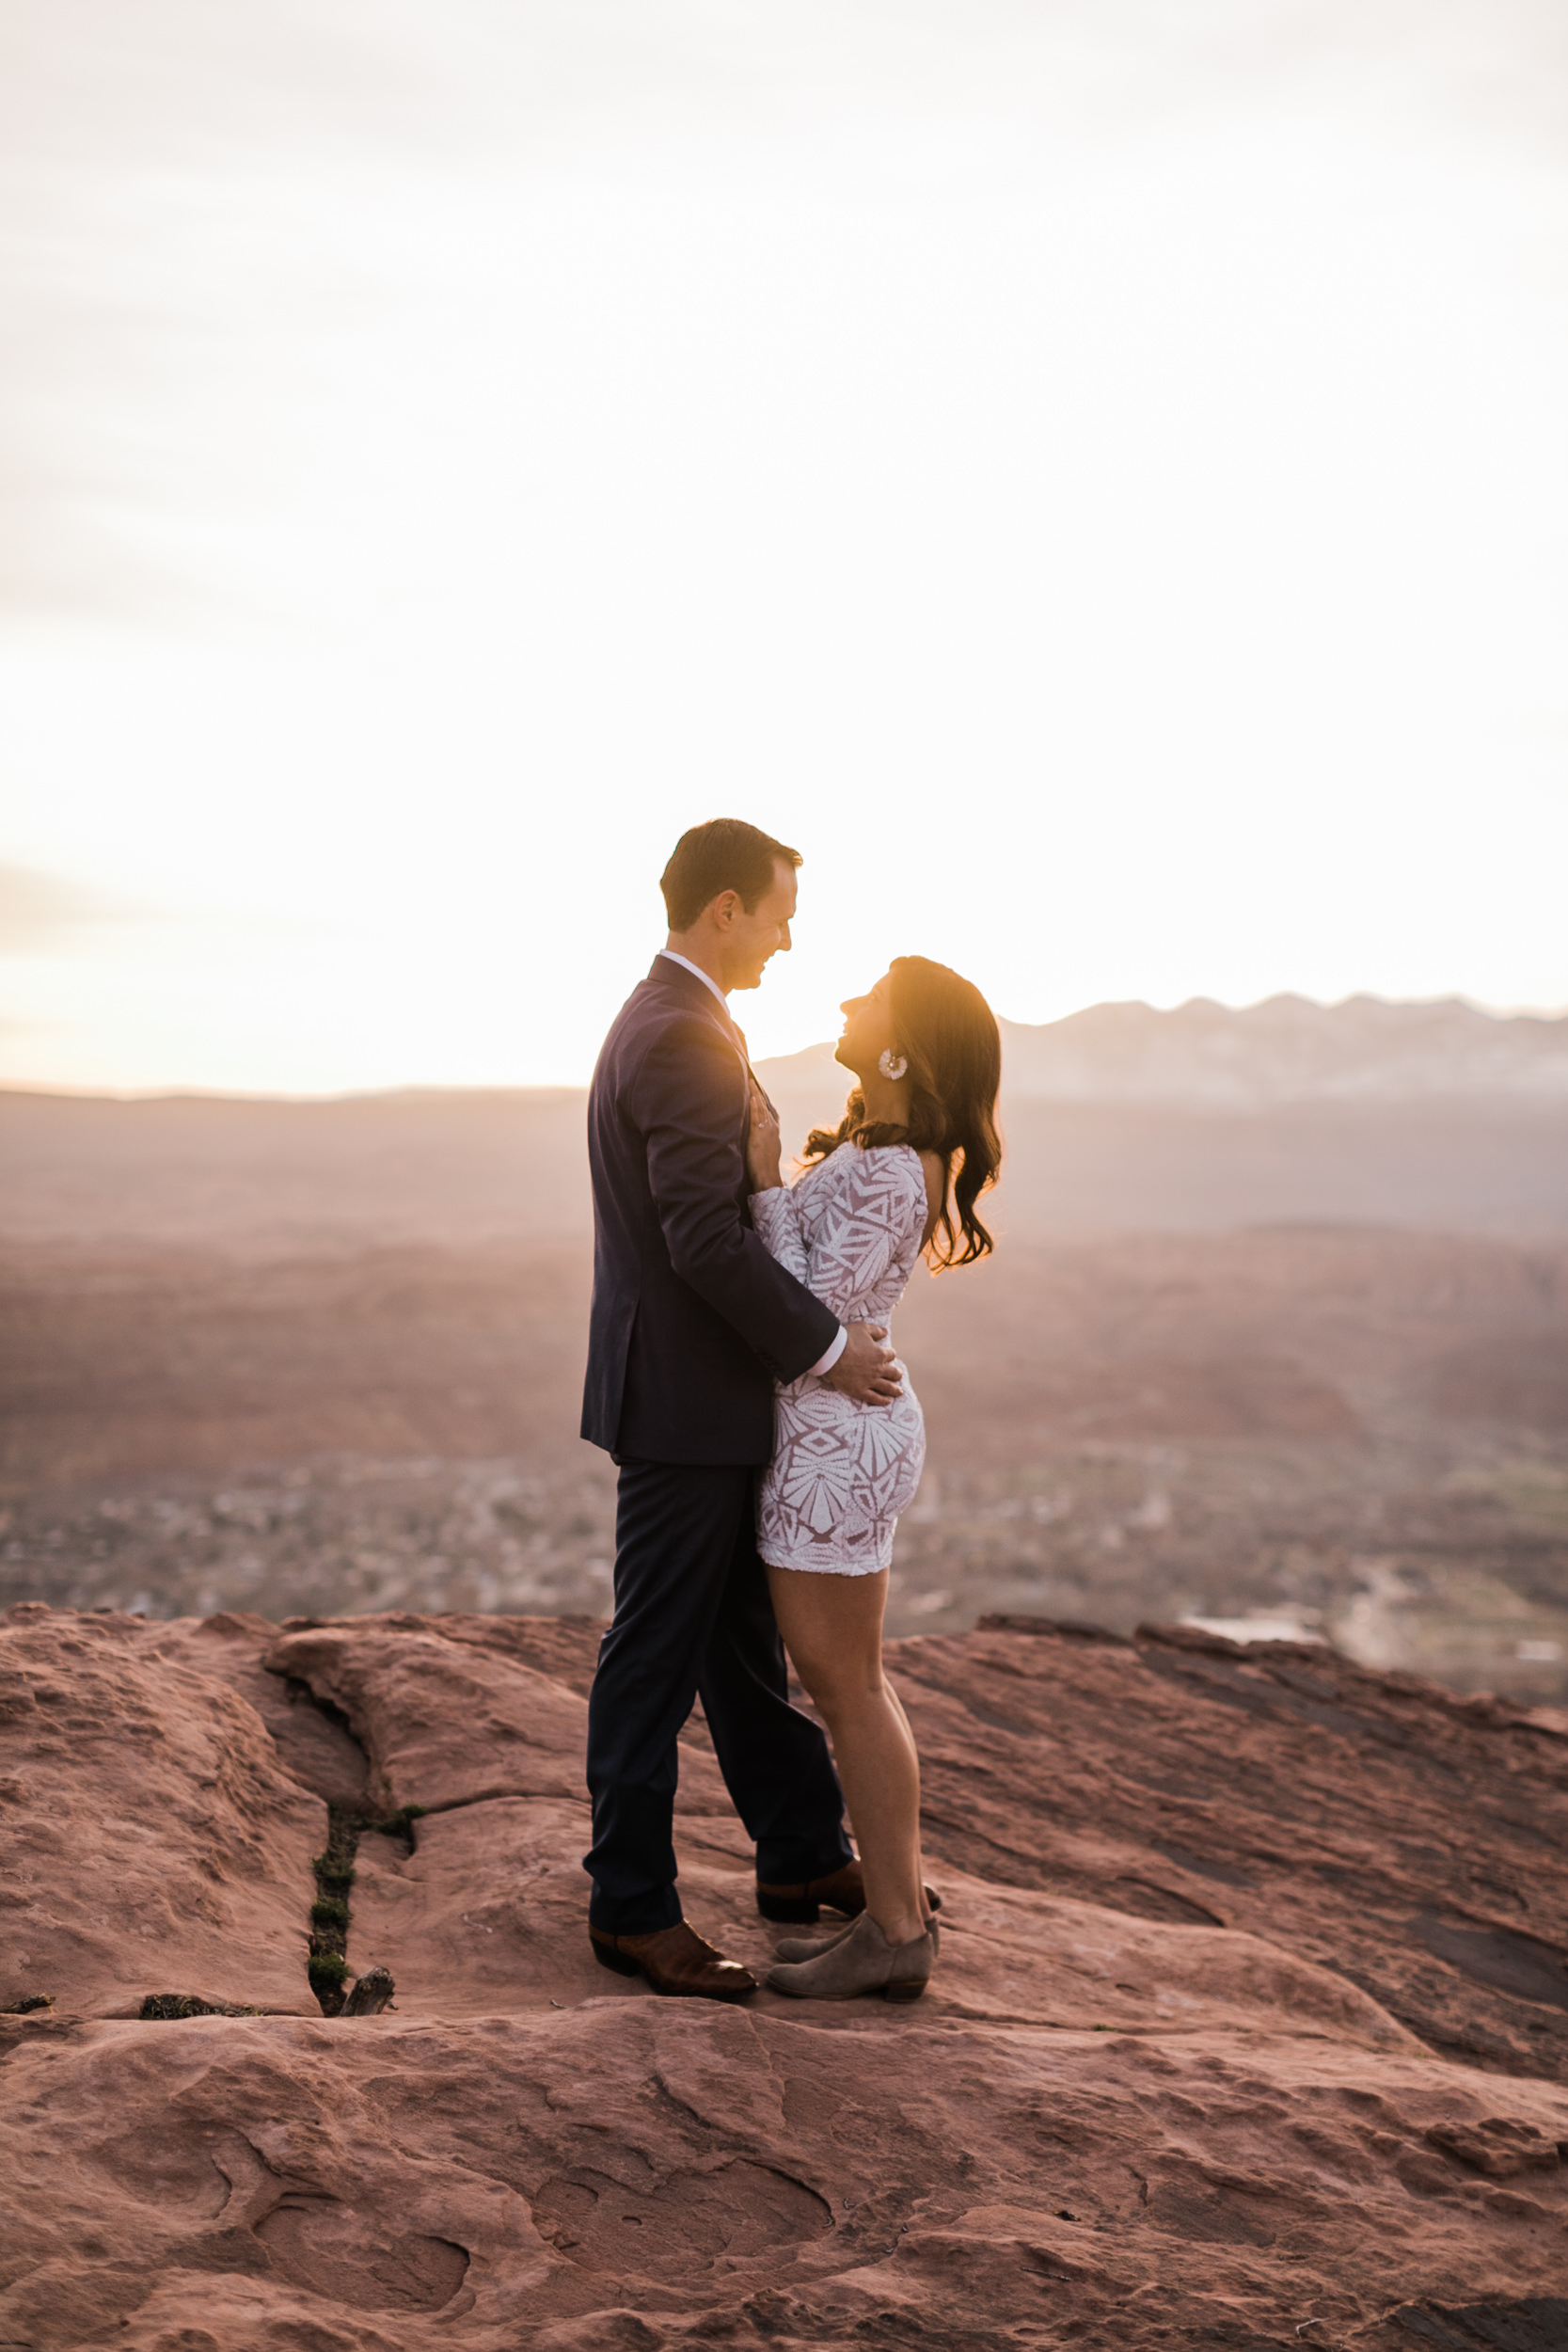 The Hearnes Adventure Elopement Photography Excursion in Moab Utah